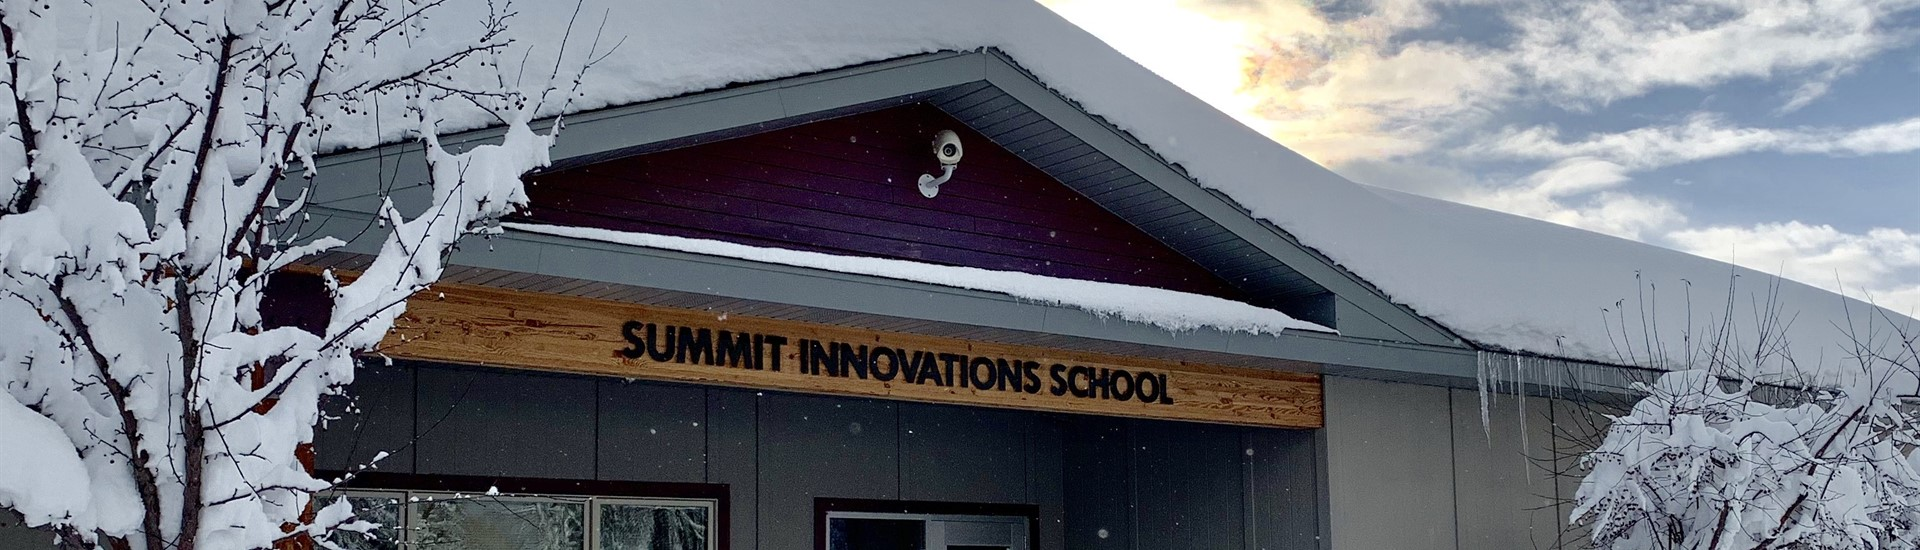 Summit Innovations School in the snow